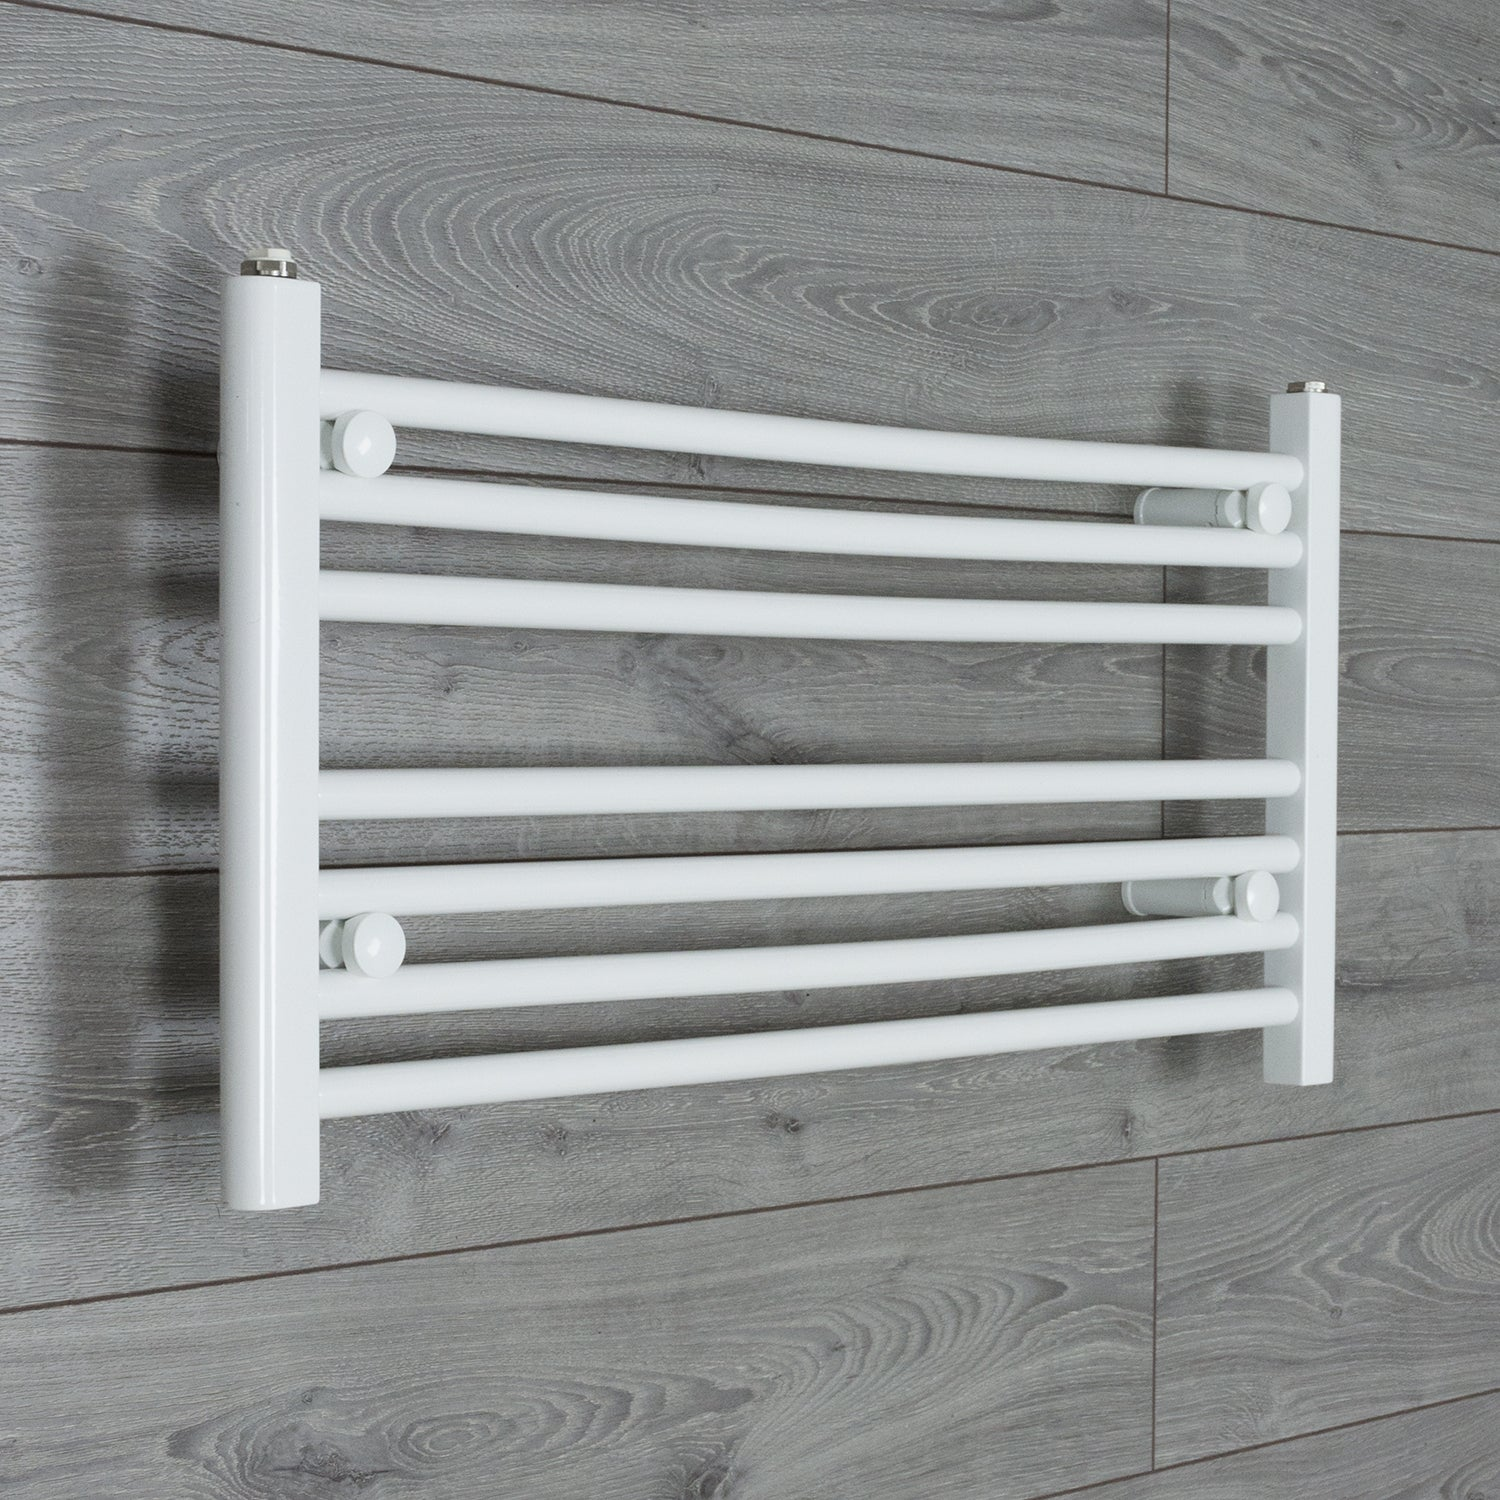 800x400mm Flat White Electric Element Towel Rail